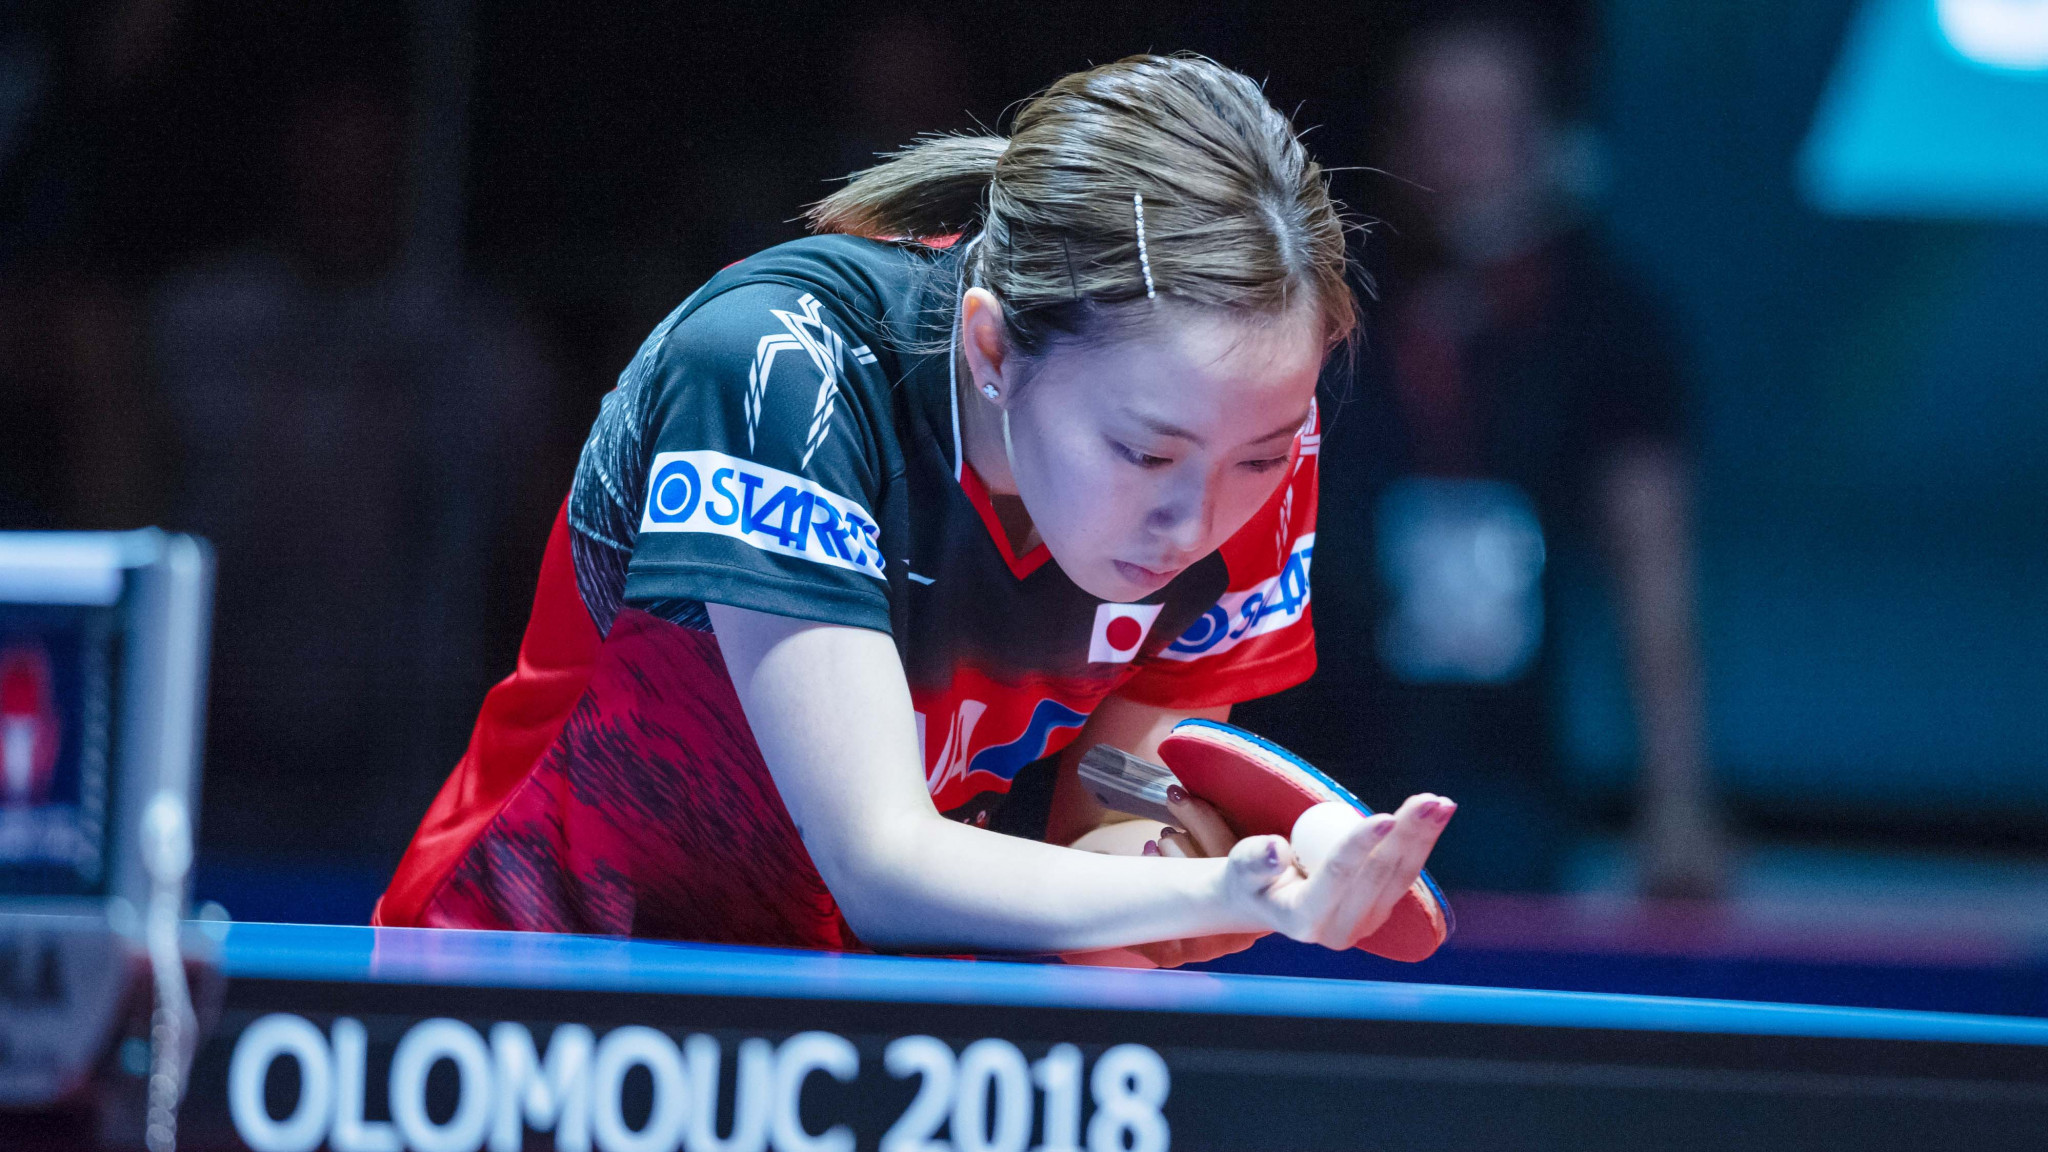 Top seed and defending champion Kasumi Ishikawa of Japan was made to work hard to earn a place in the women's singles round of 16 ©ITTF/Jan Brychta